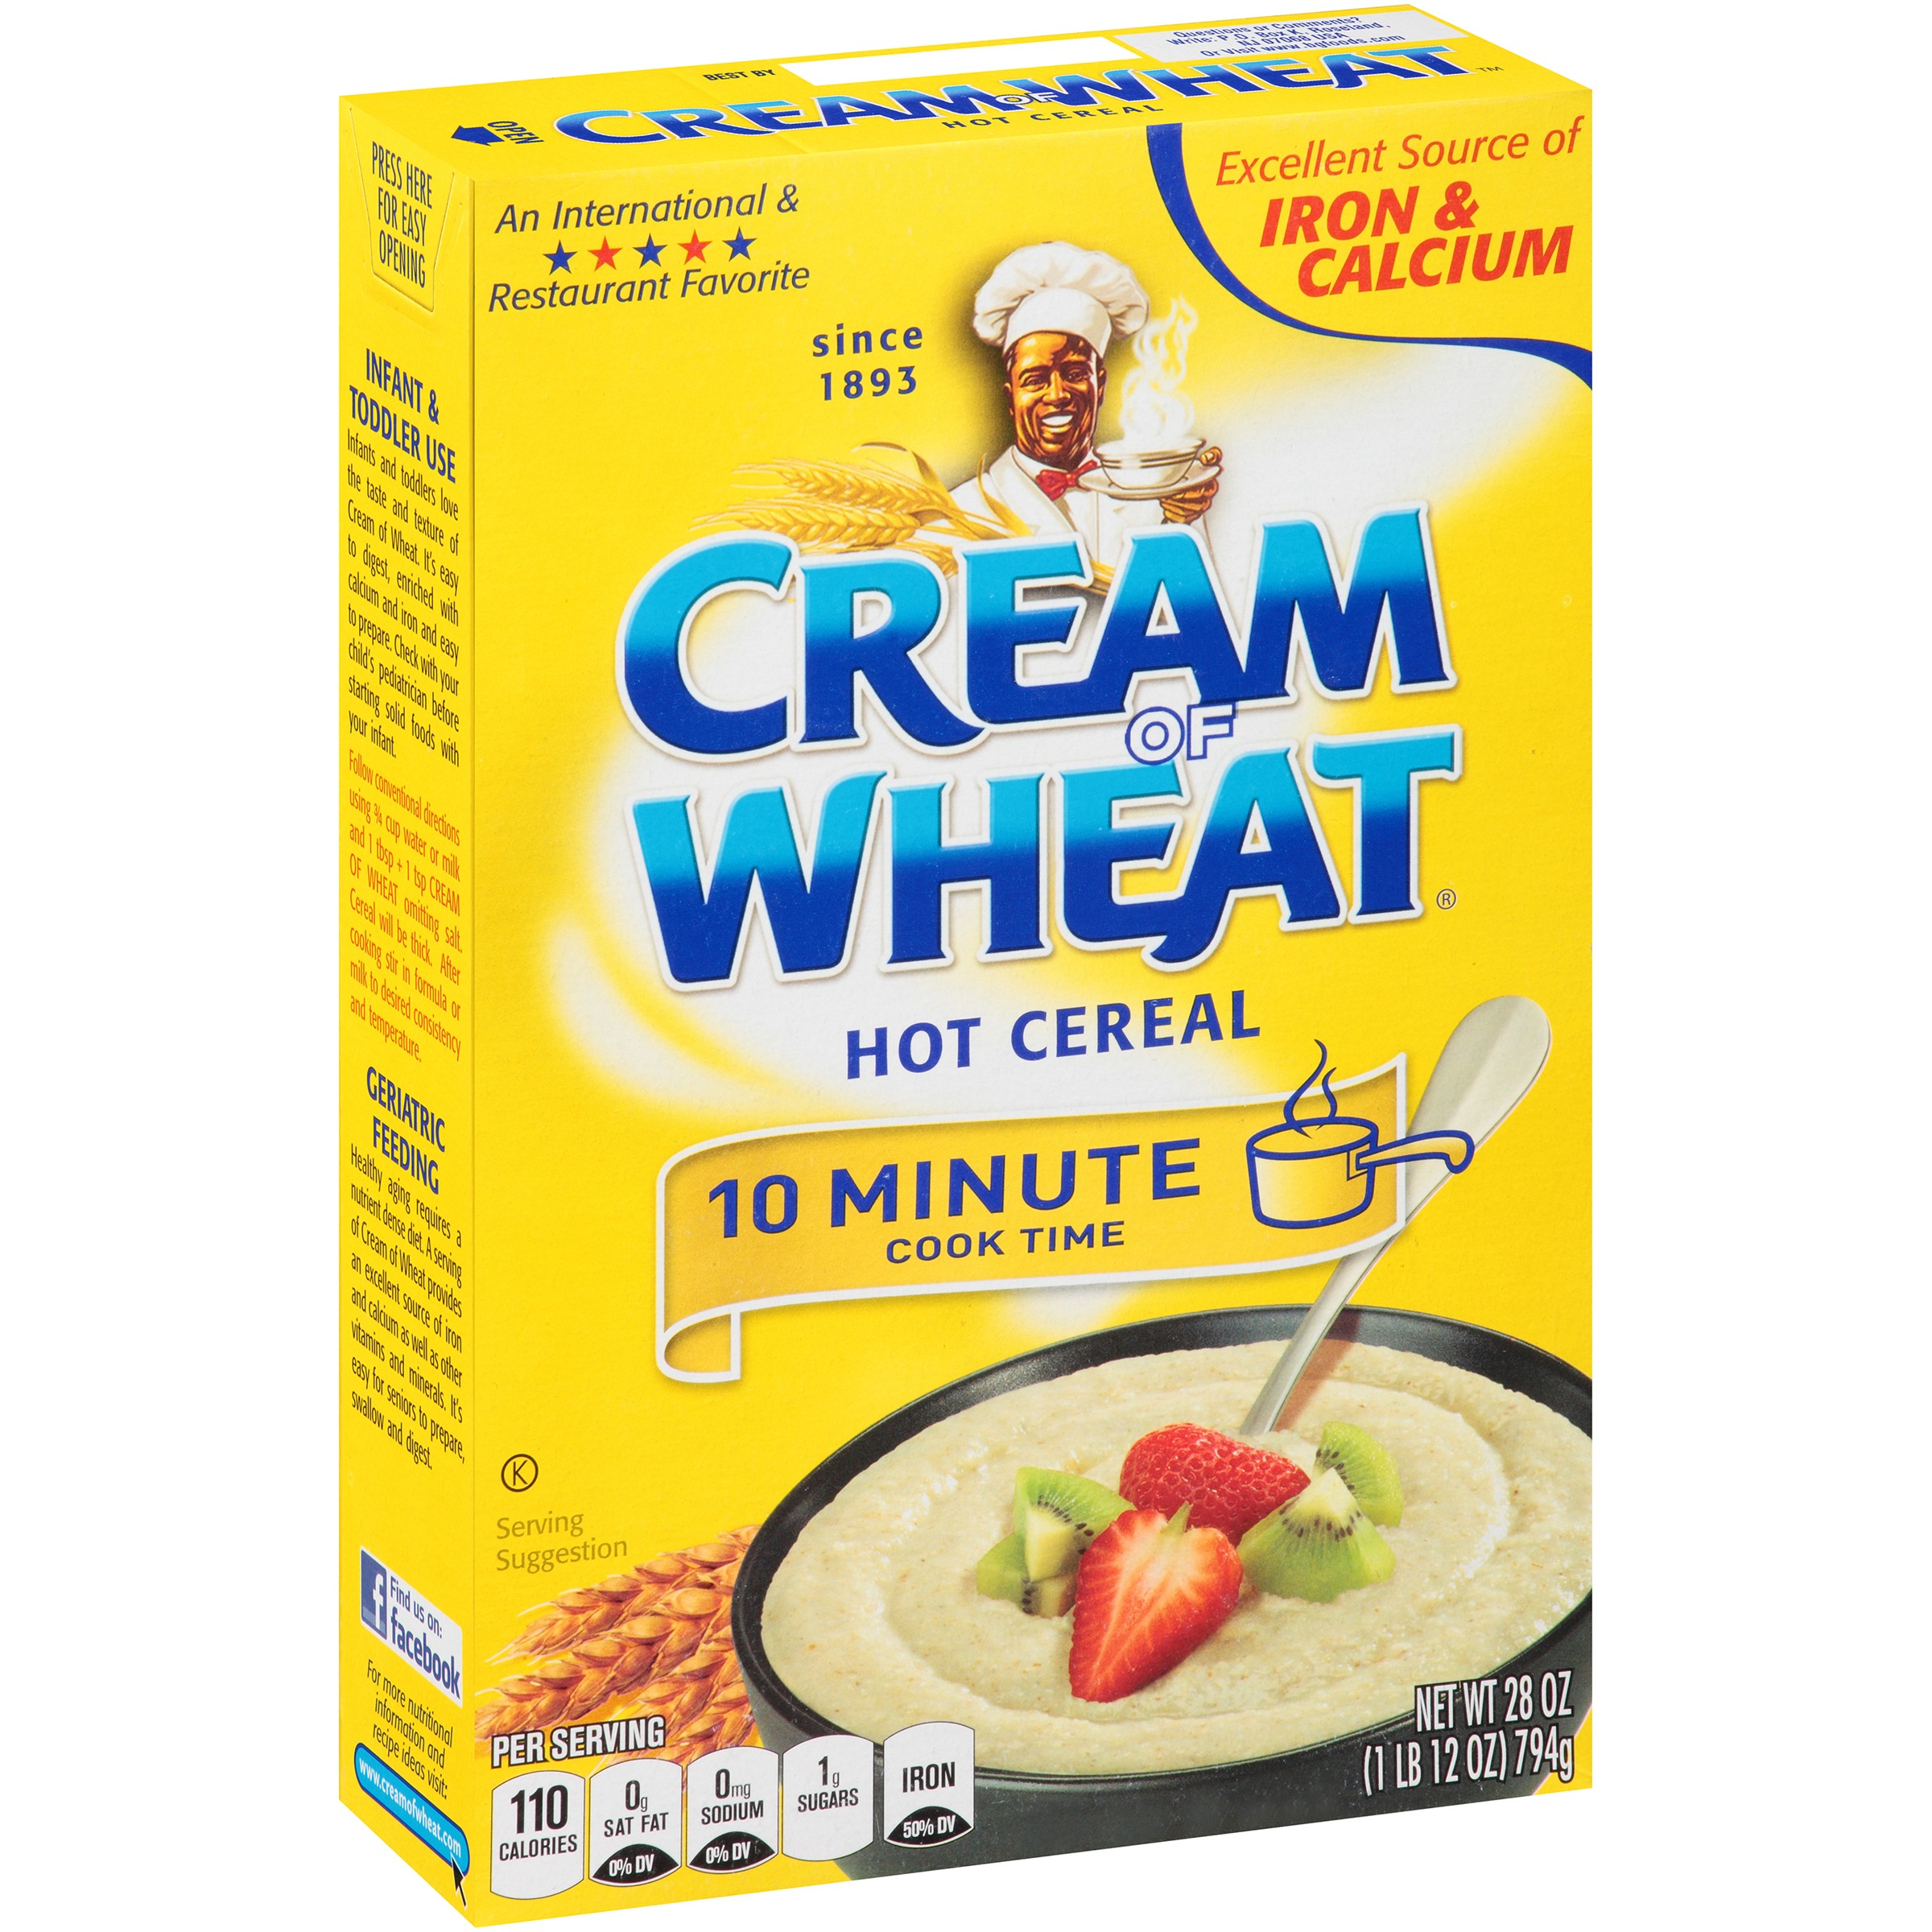 Cream of Wheat® Original 10 Minute Hot Cereal 28 oz. Box